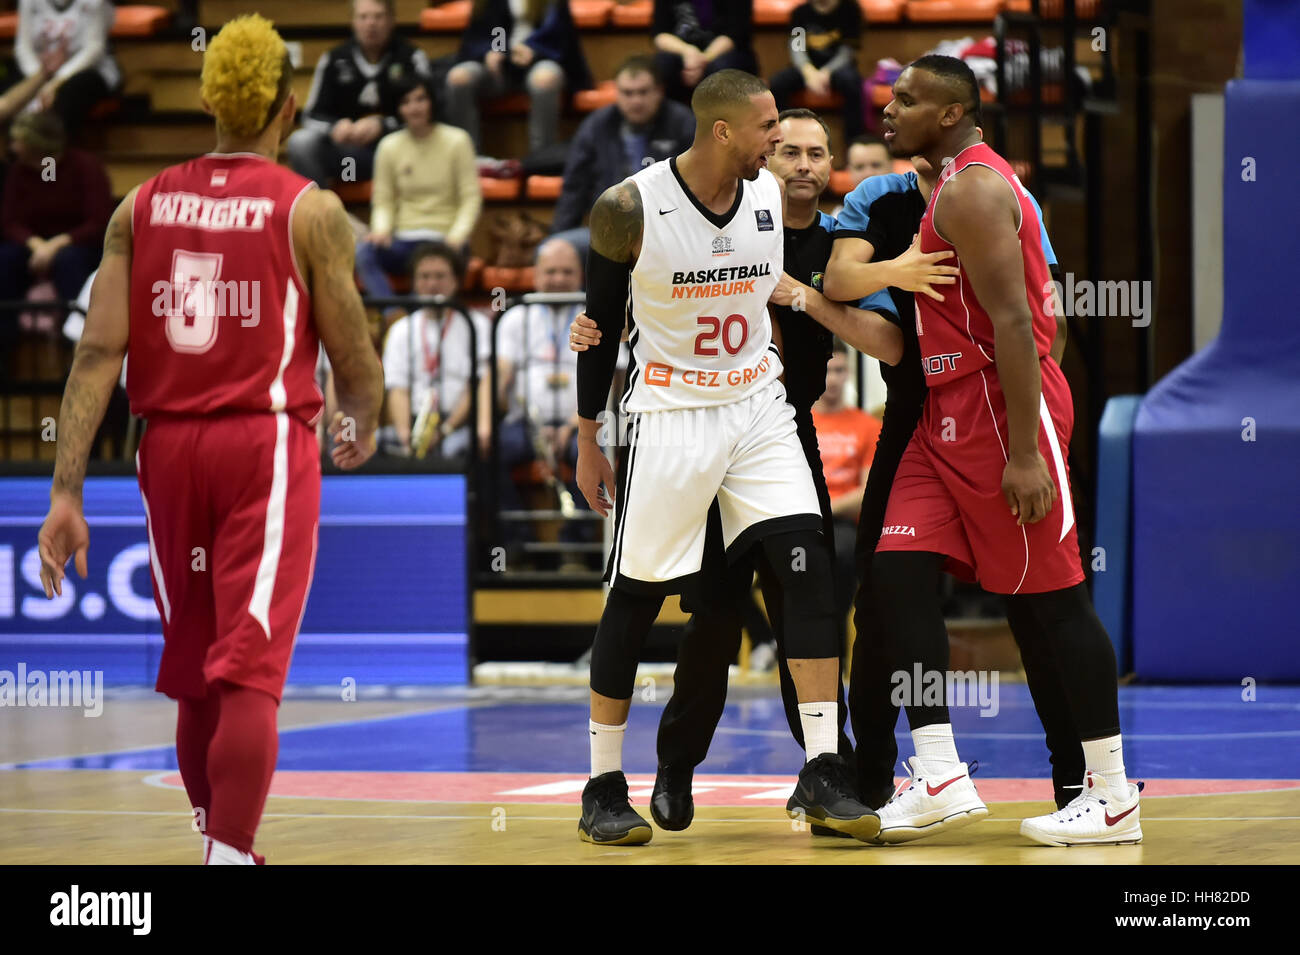 DIAMON SIMPSON (centre) of Nymburk and JORDAN ABOUDOU (right) of Monaco in  action during the Men's basketball Champions League 13th